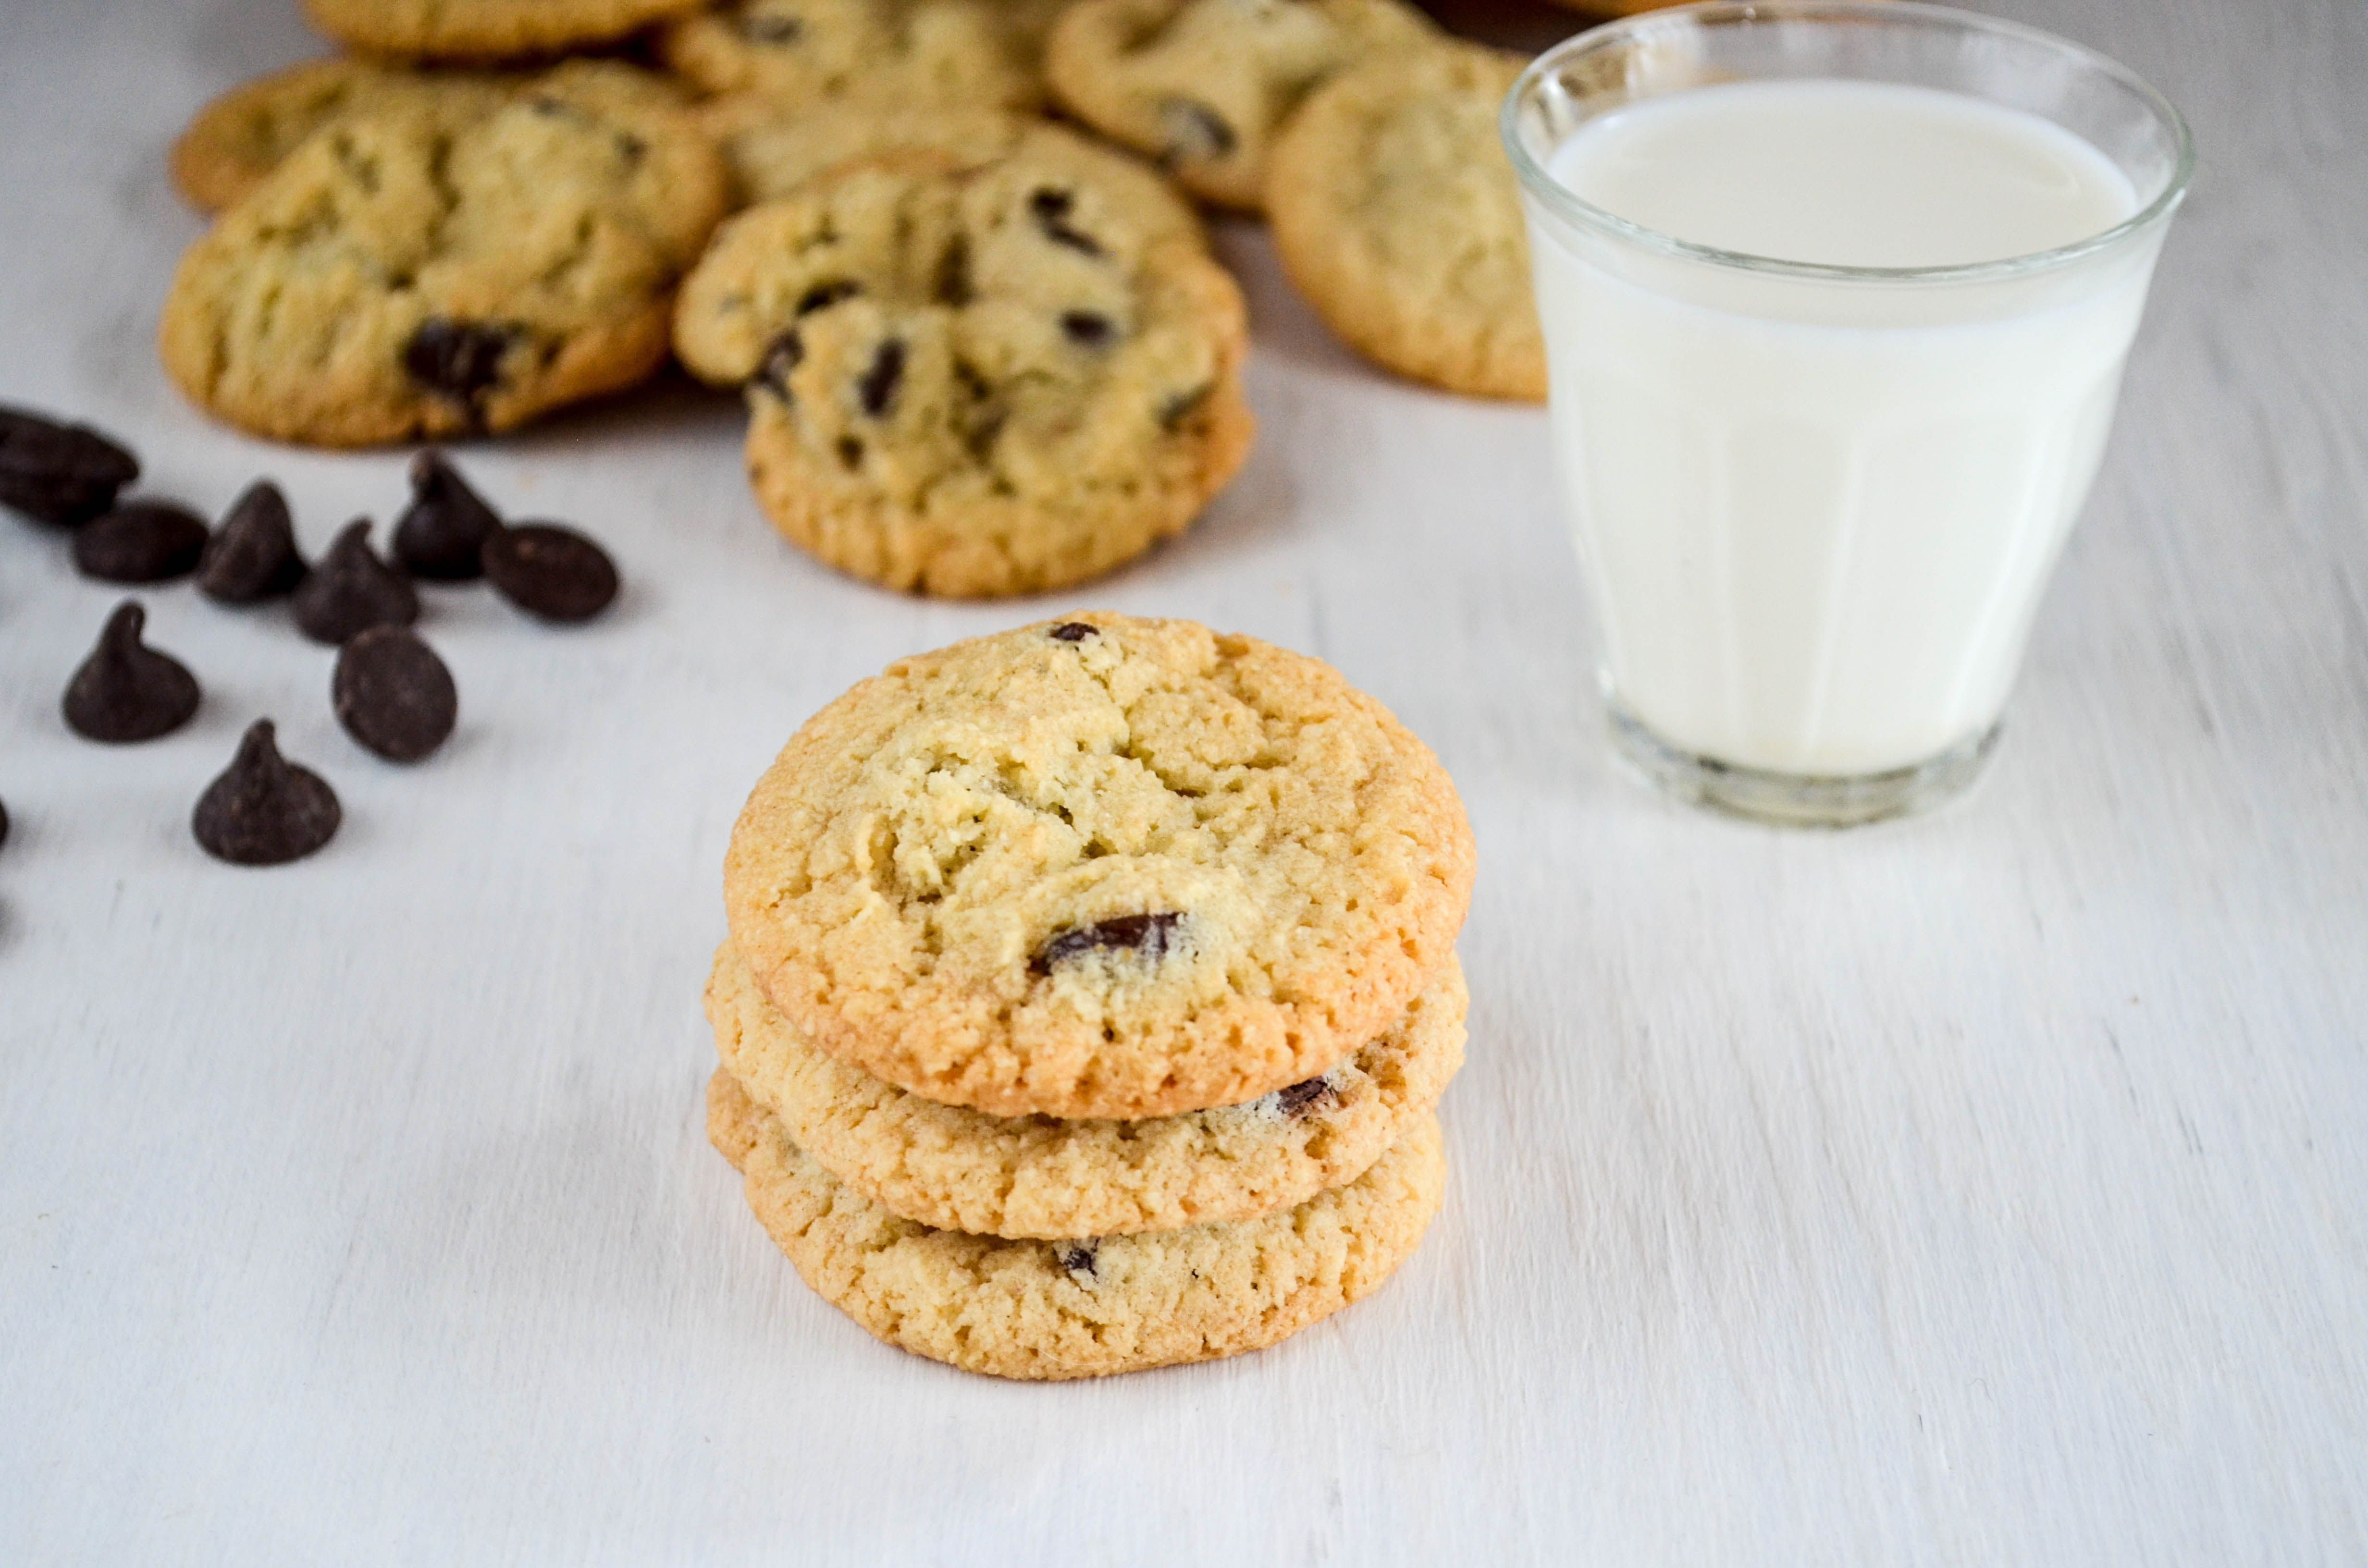 Almond Flour Chocolate Chip Cookies Are Gluten Free and Delicious